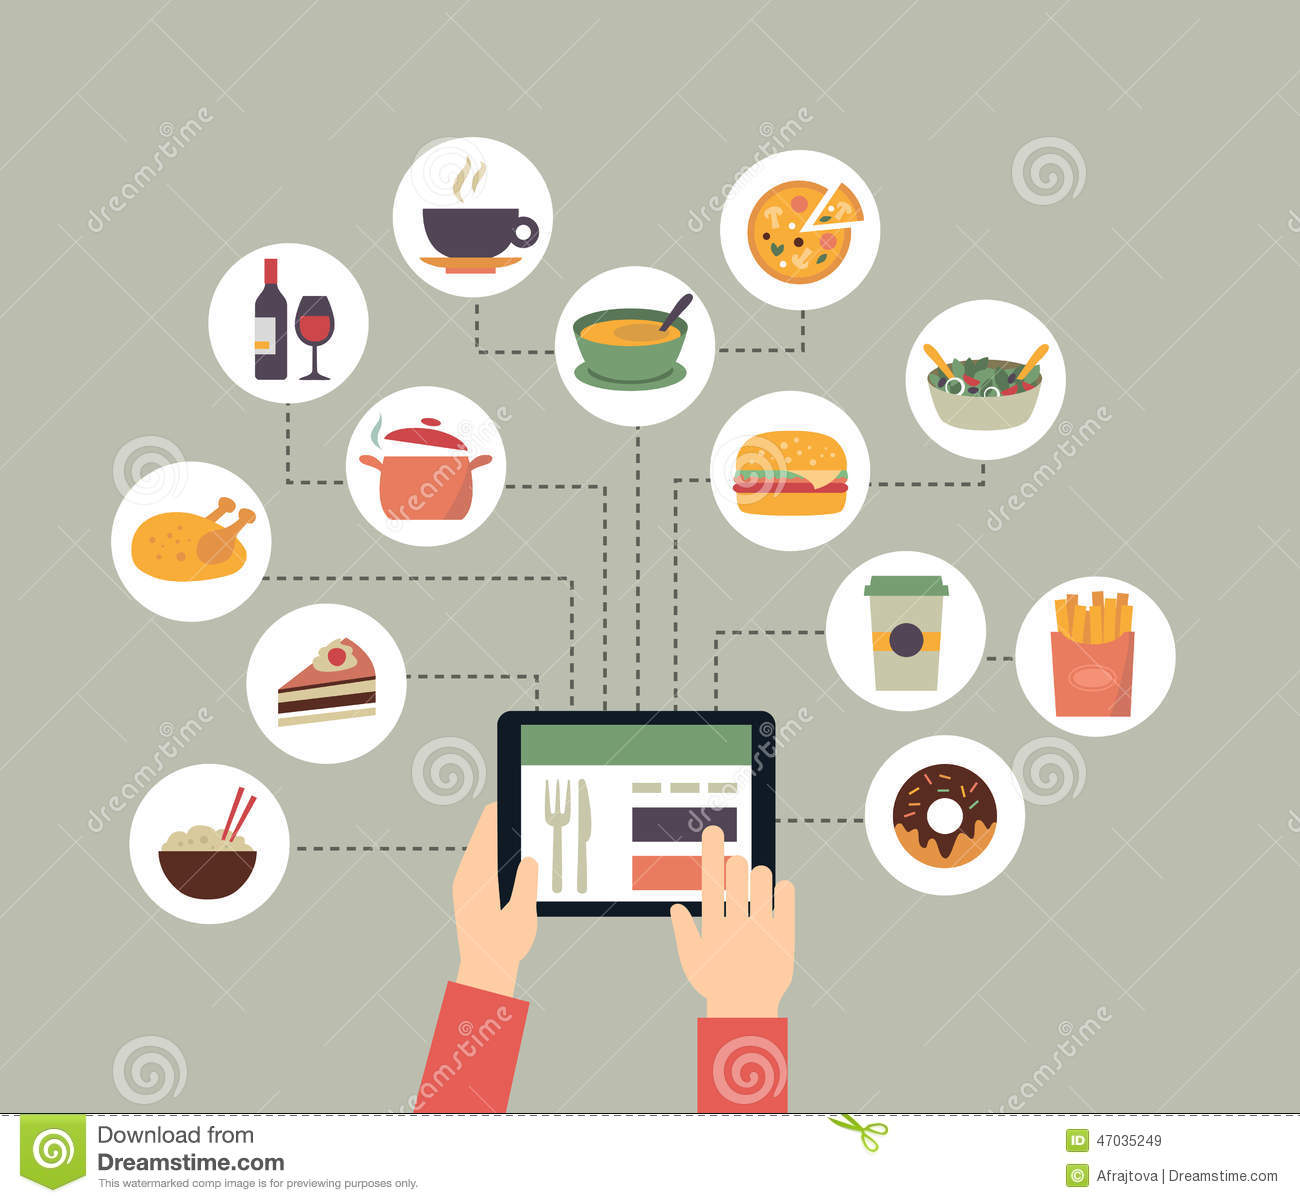 ... , searching for recipes or ordering food online. Flat design style: www.dreamstime.com/stock-illustration-ordering-food-online...